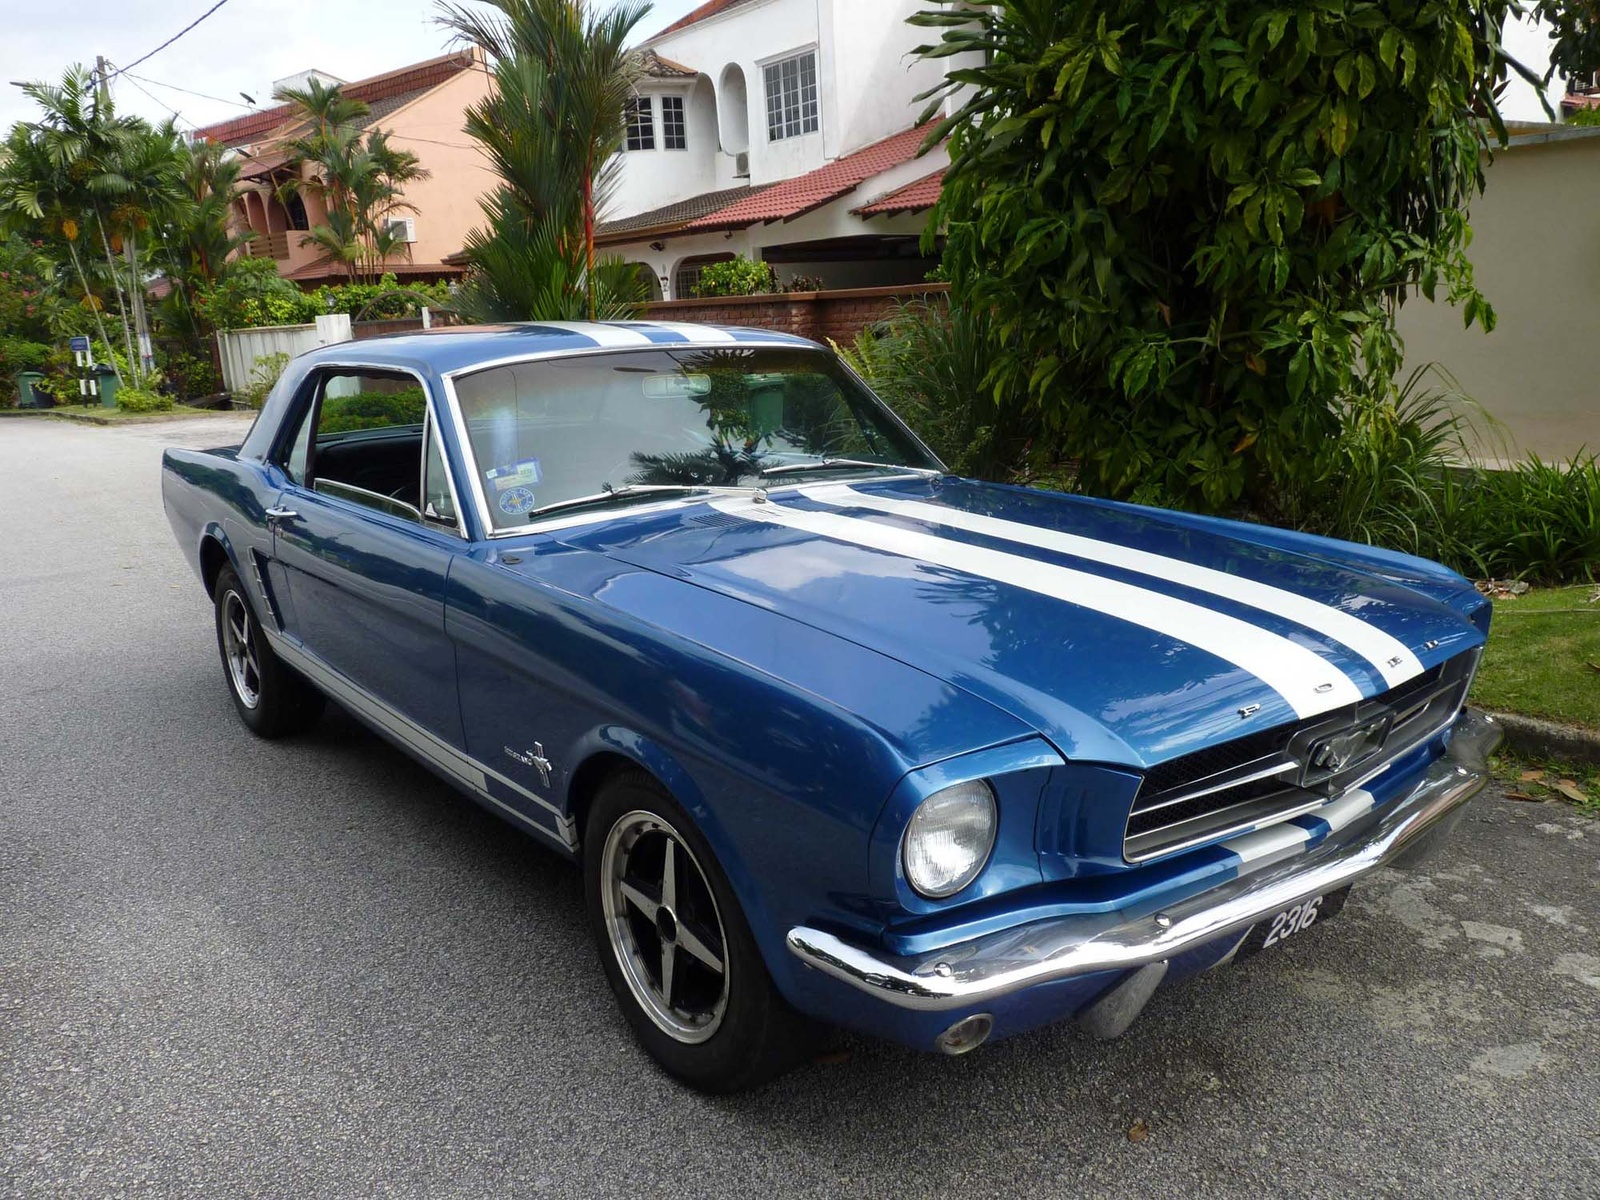 Reverse or forward when you push the gas pedalcould you please help me on this i am from malaysia not many mechanic knows about mustang over here